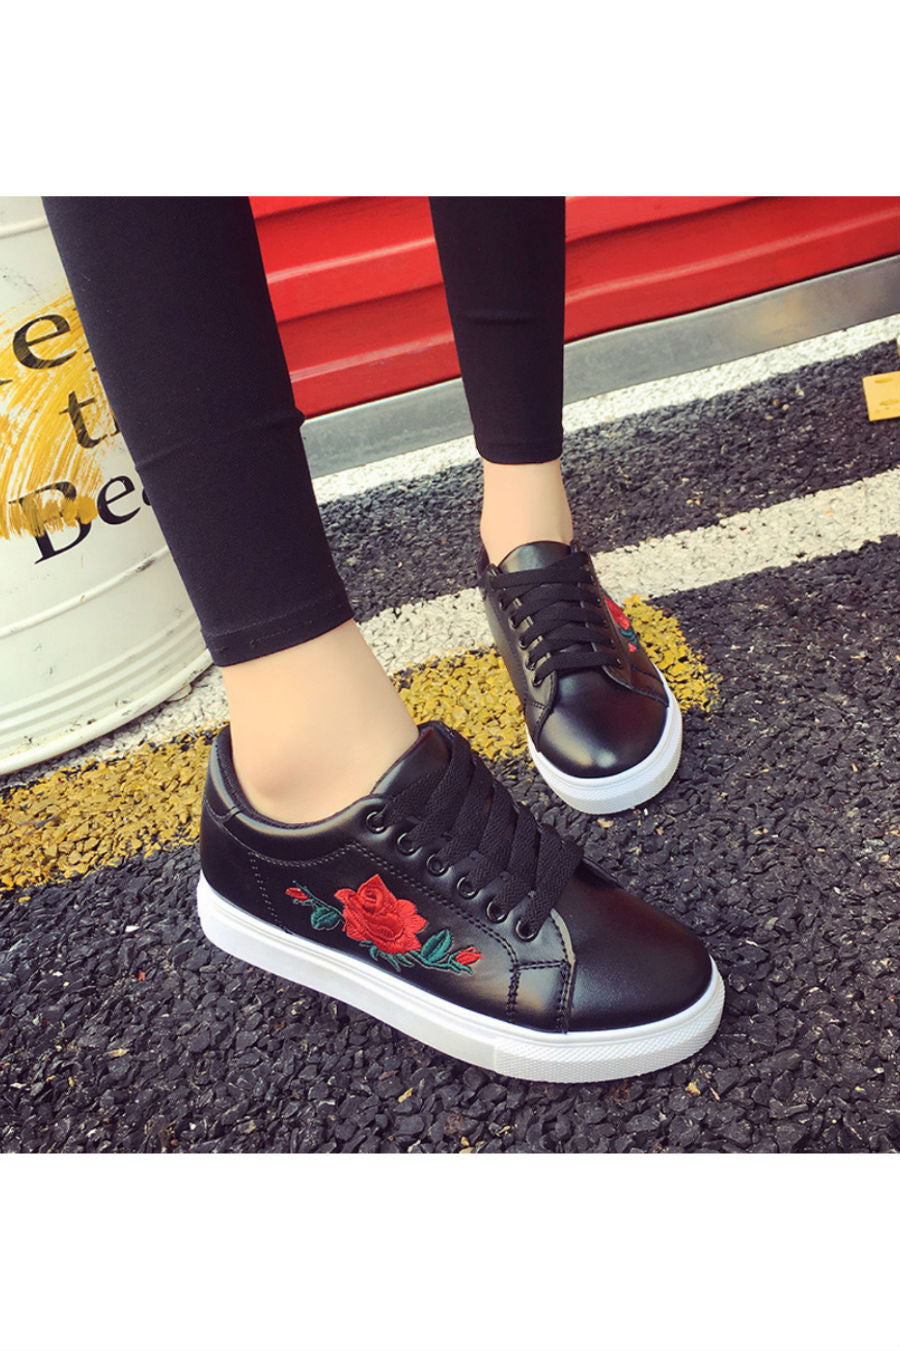 Floral Embroidered Black Sneakers